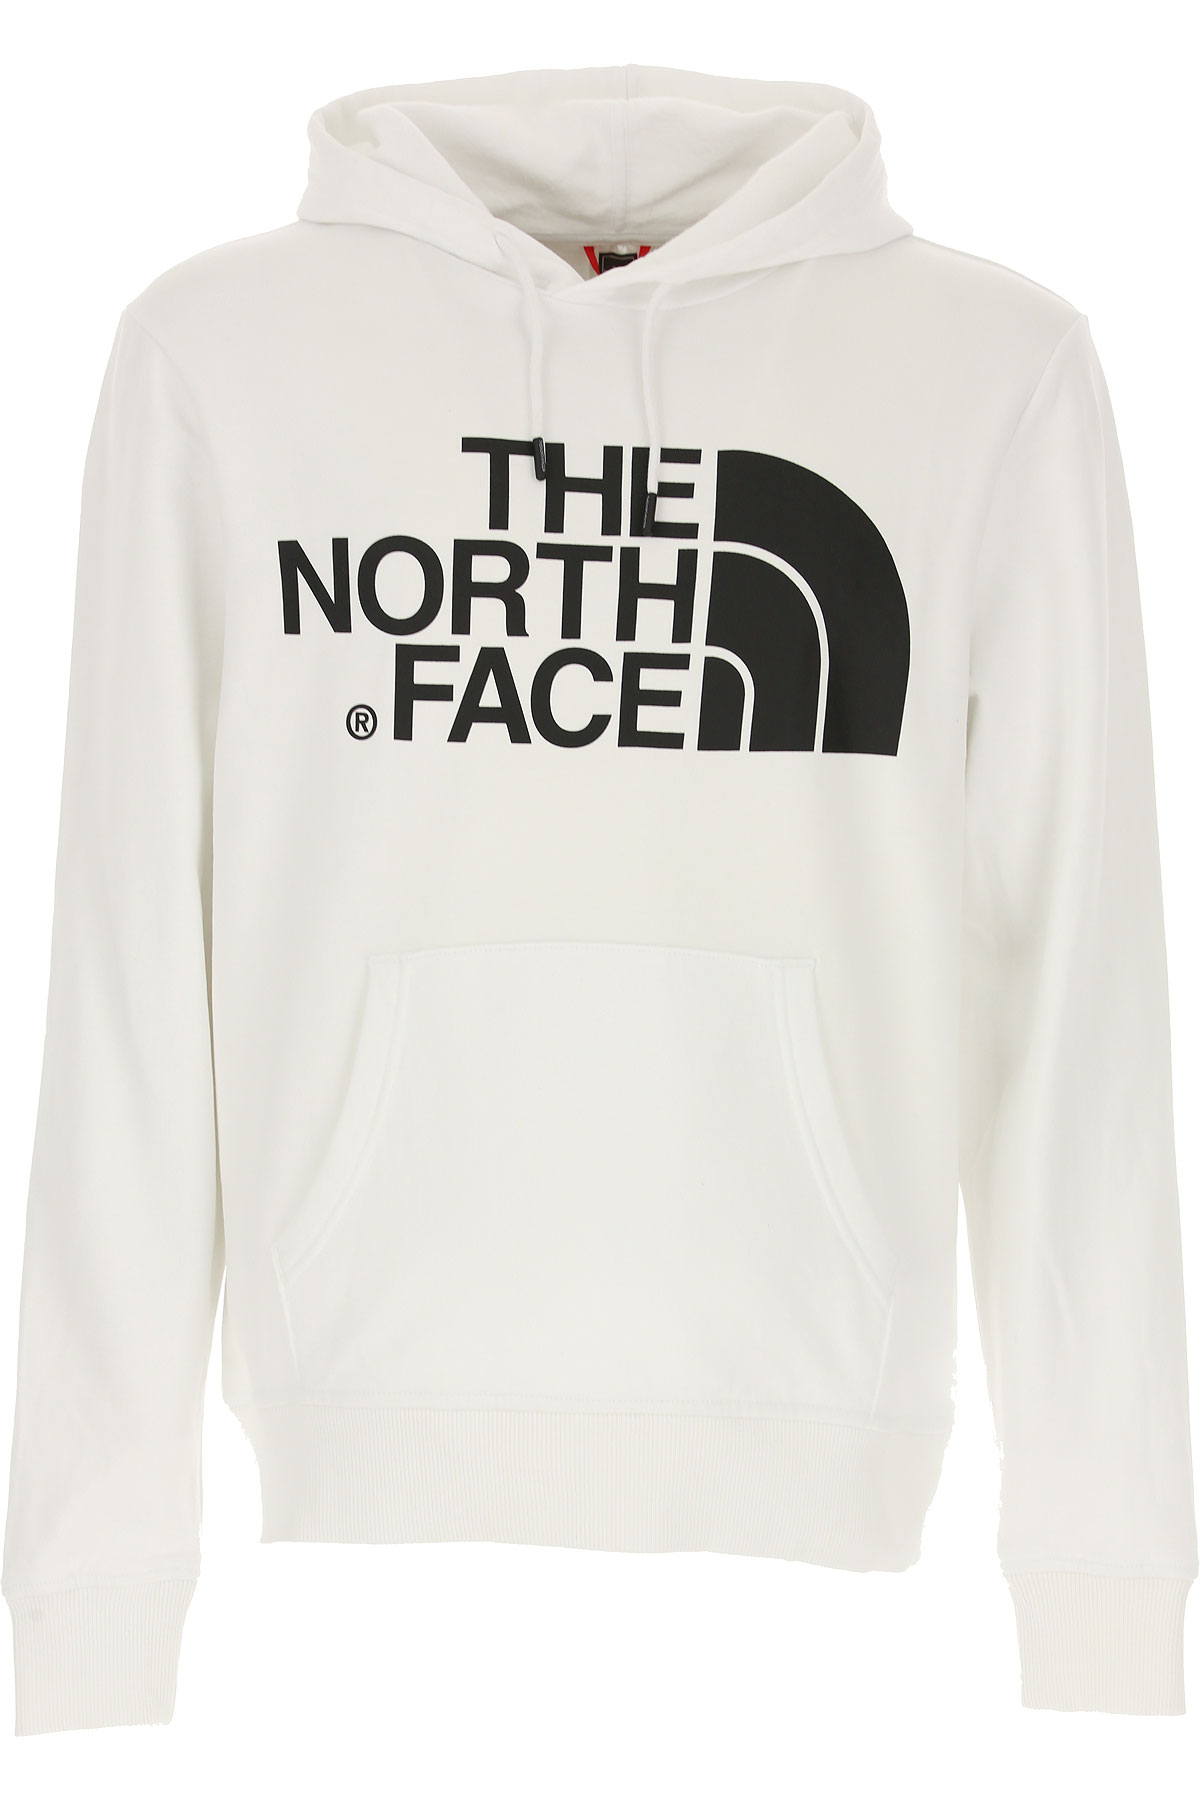 The North Face Sweatshirt for Men On Sale, White, Cotton, 2019, M S